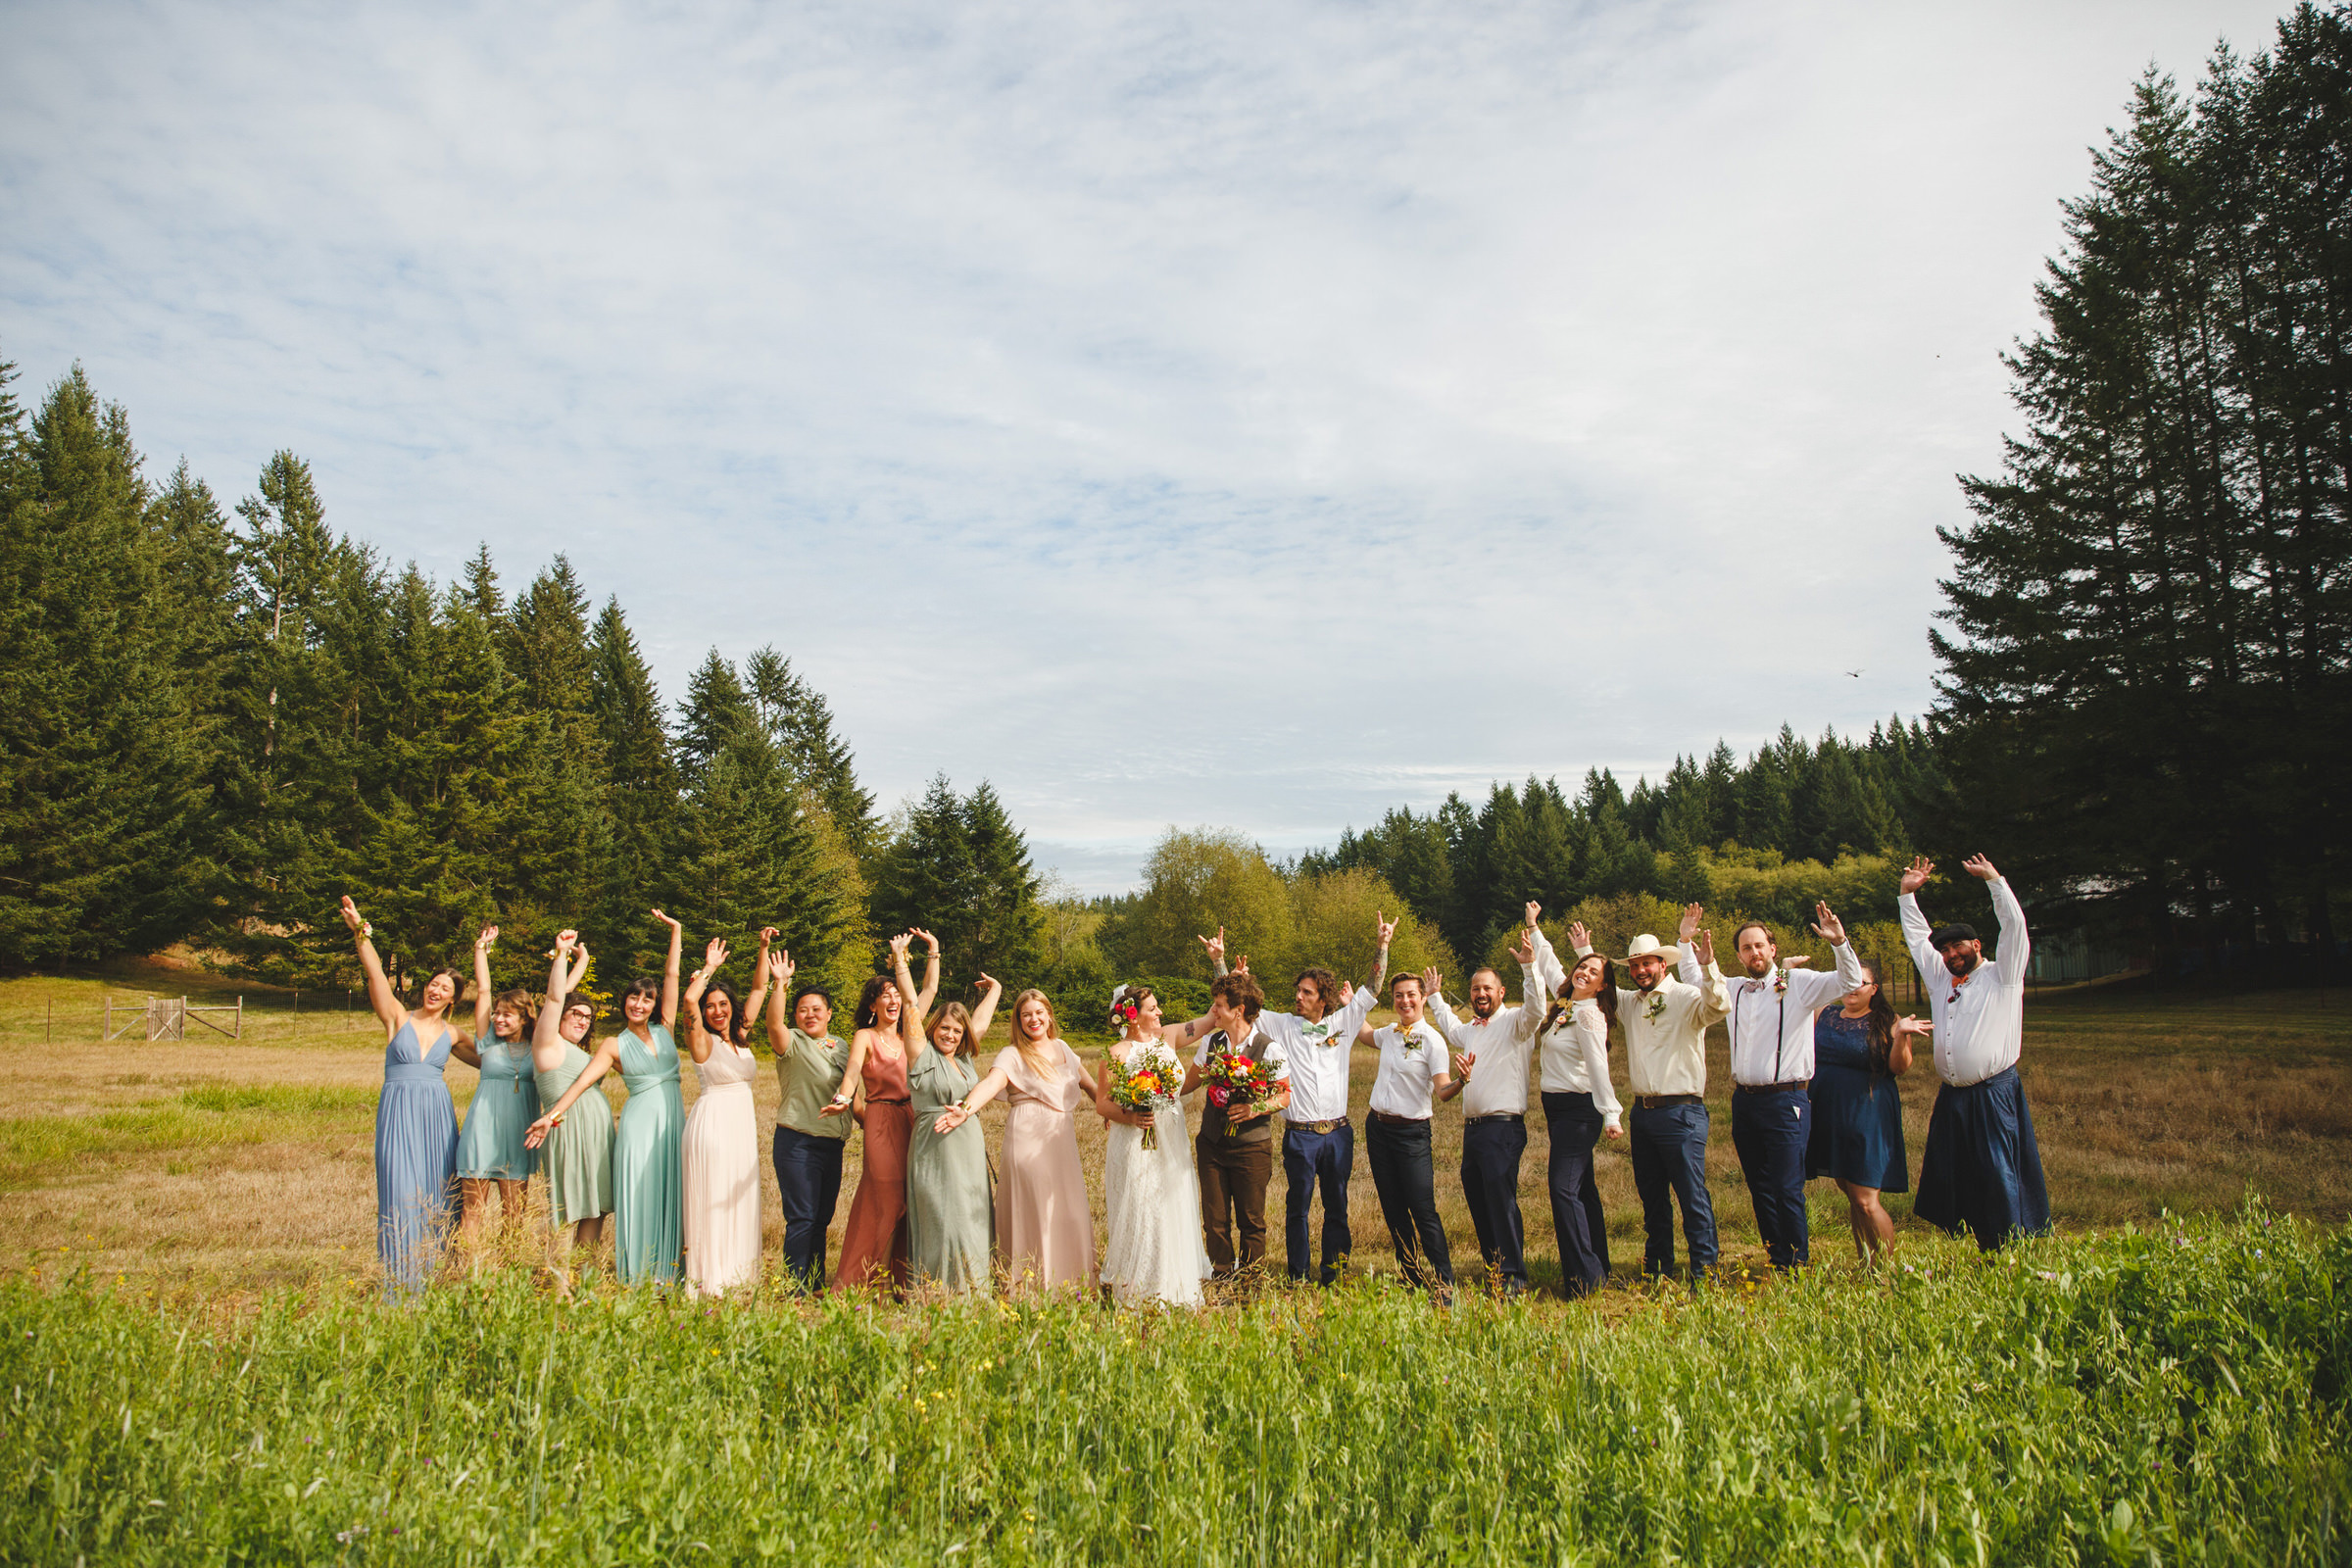 Group shop in rustic setting - photo by Satya Curcio Photography